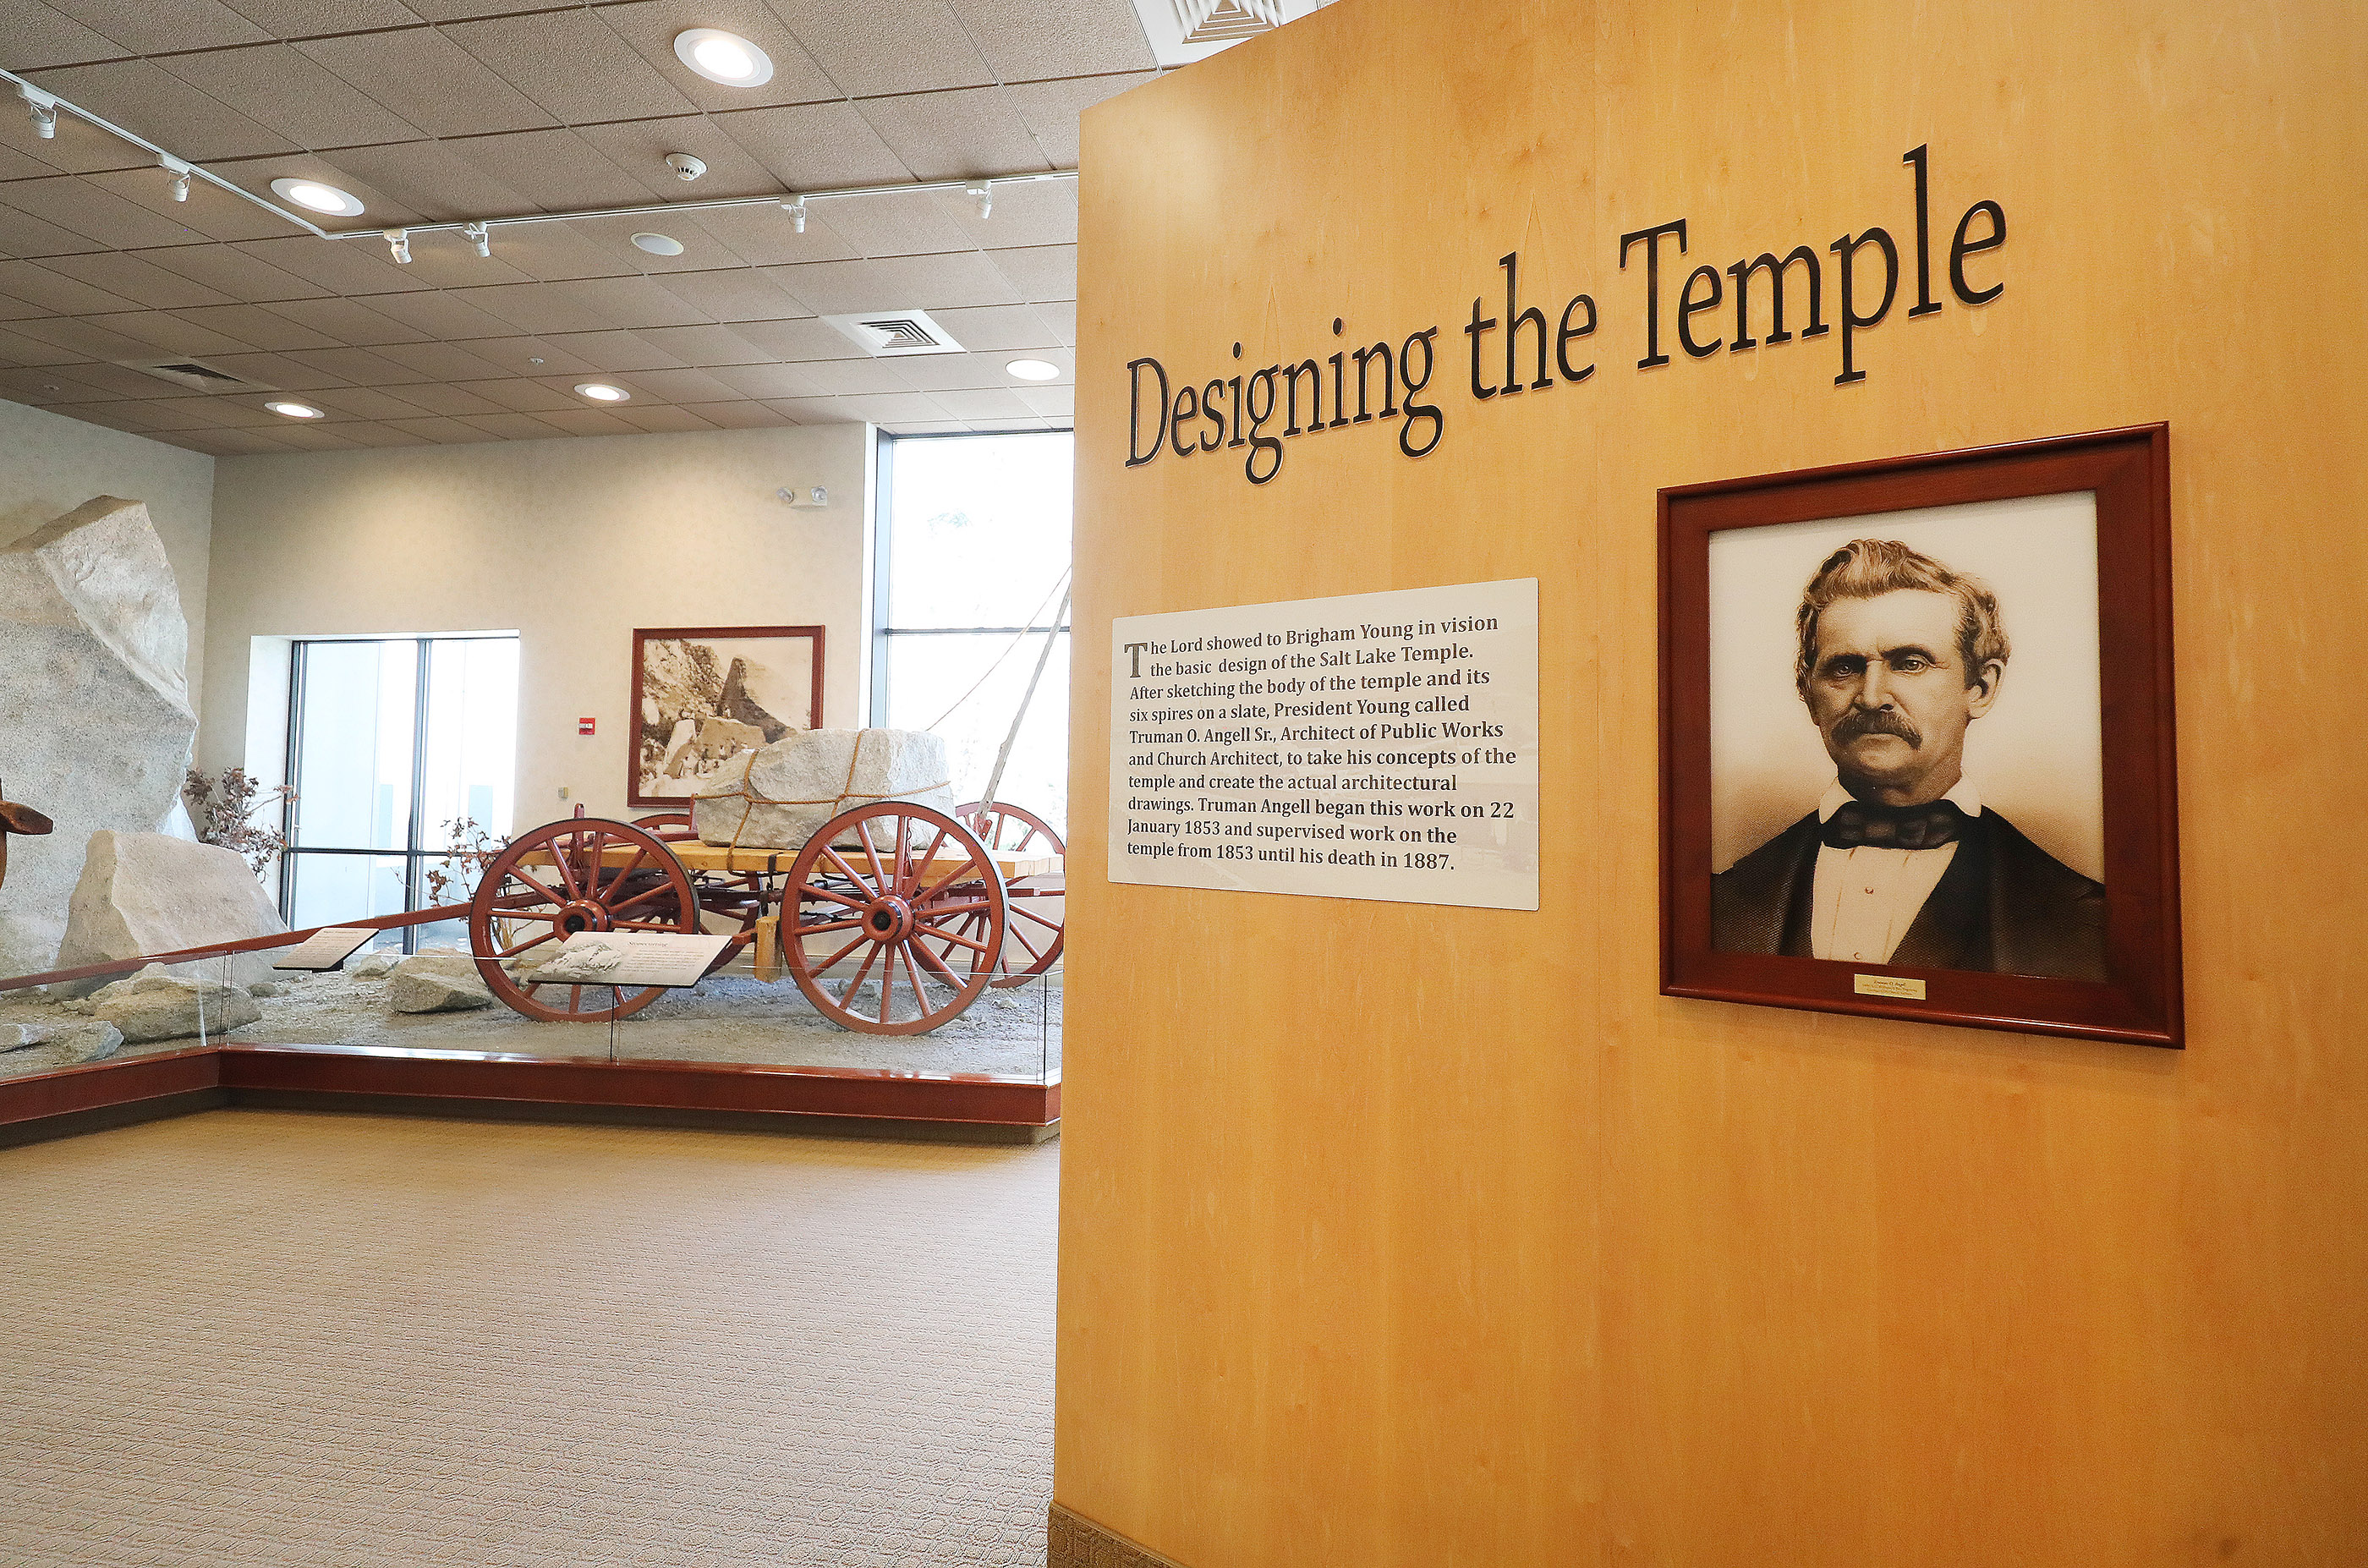 The South Visitors' Center on Temple Square in Salt Lake City on Friday, April 19, 2019. Leadership of The Church of Jesus Christ of Latter-day Saints announced renovation plans for the Salt Lake Temple and changes to the temple grounds and Temple Square.